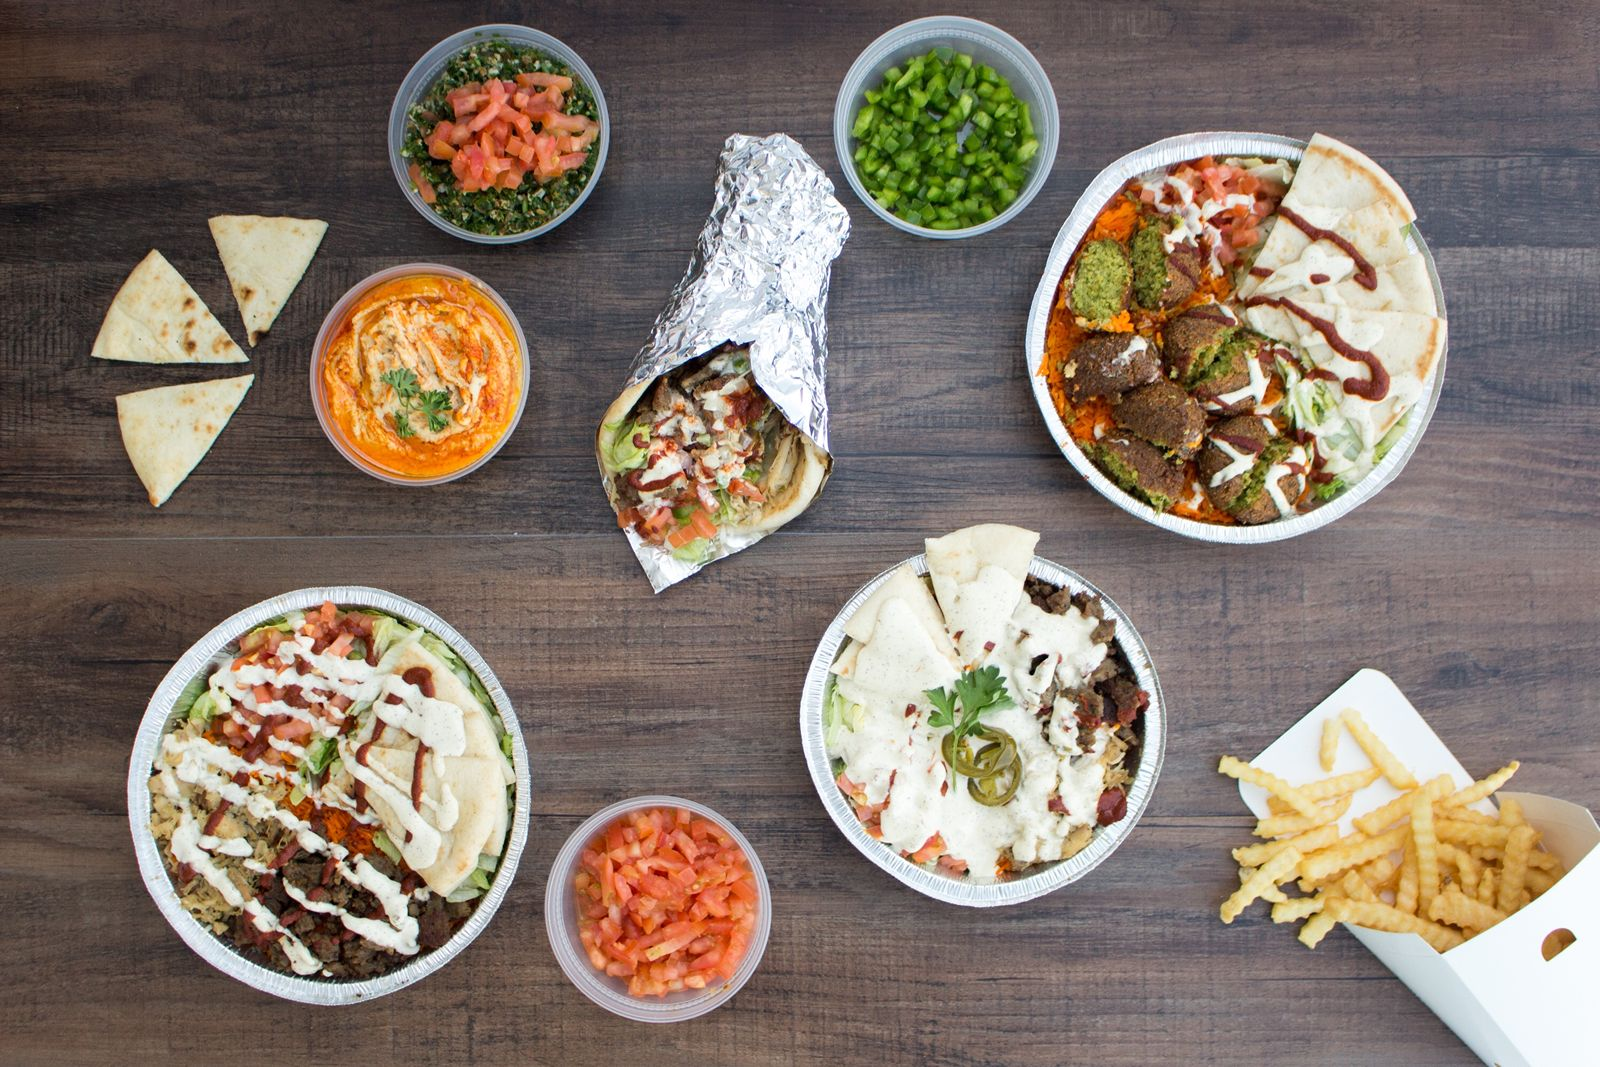 The Halal Guys to Bring Brick-and-Mortar Locations to Detroit